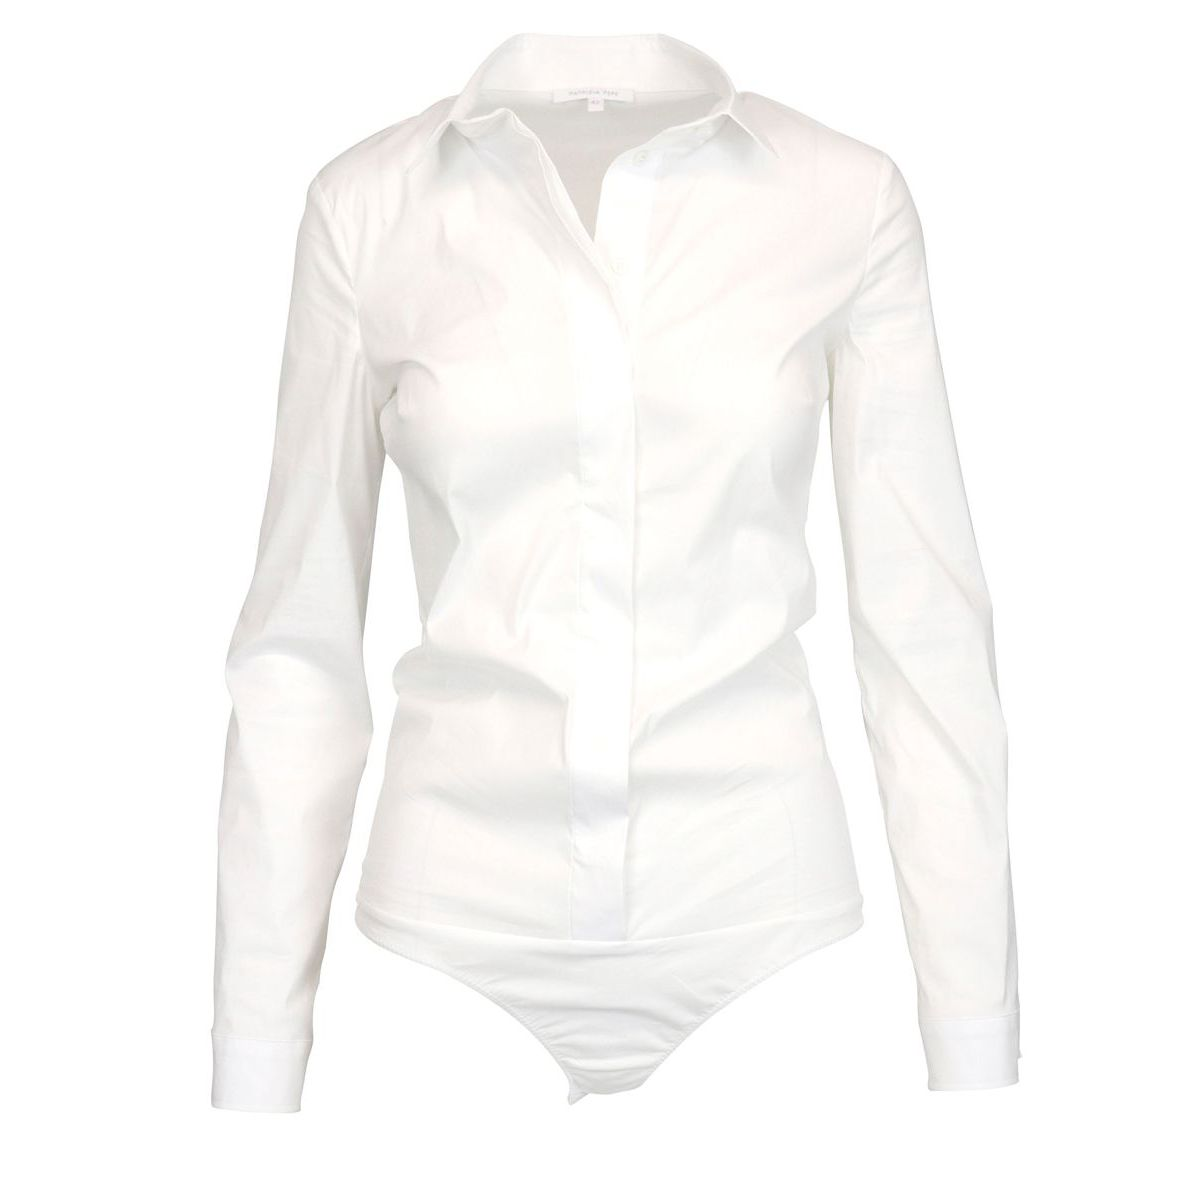 Slim fit body shirt with hidden buttoning White Patrizia Pepe